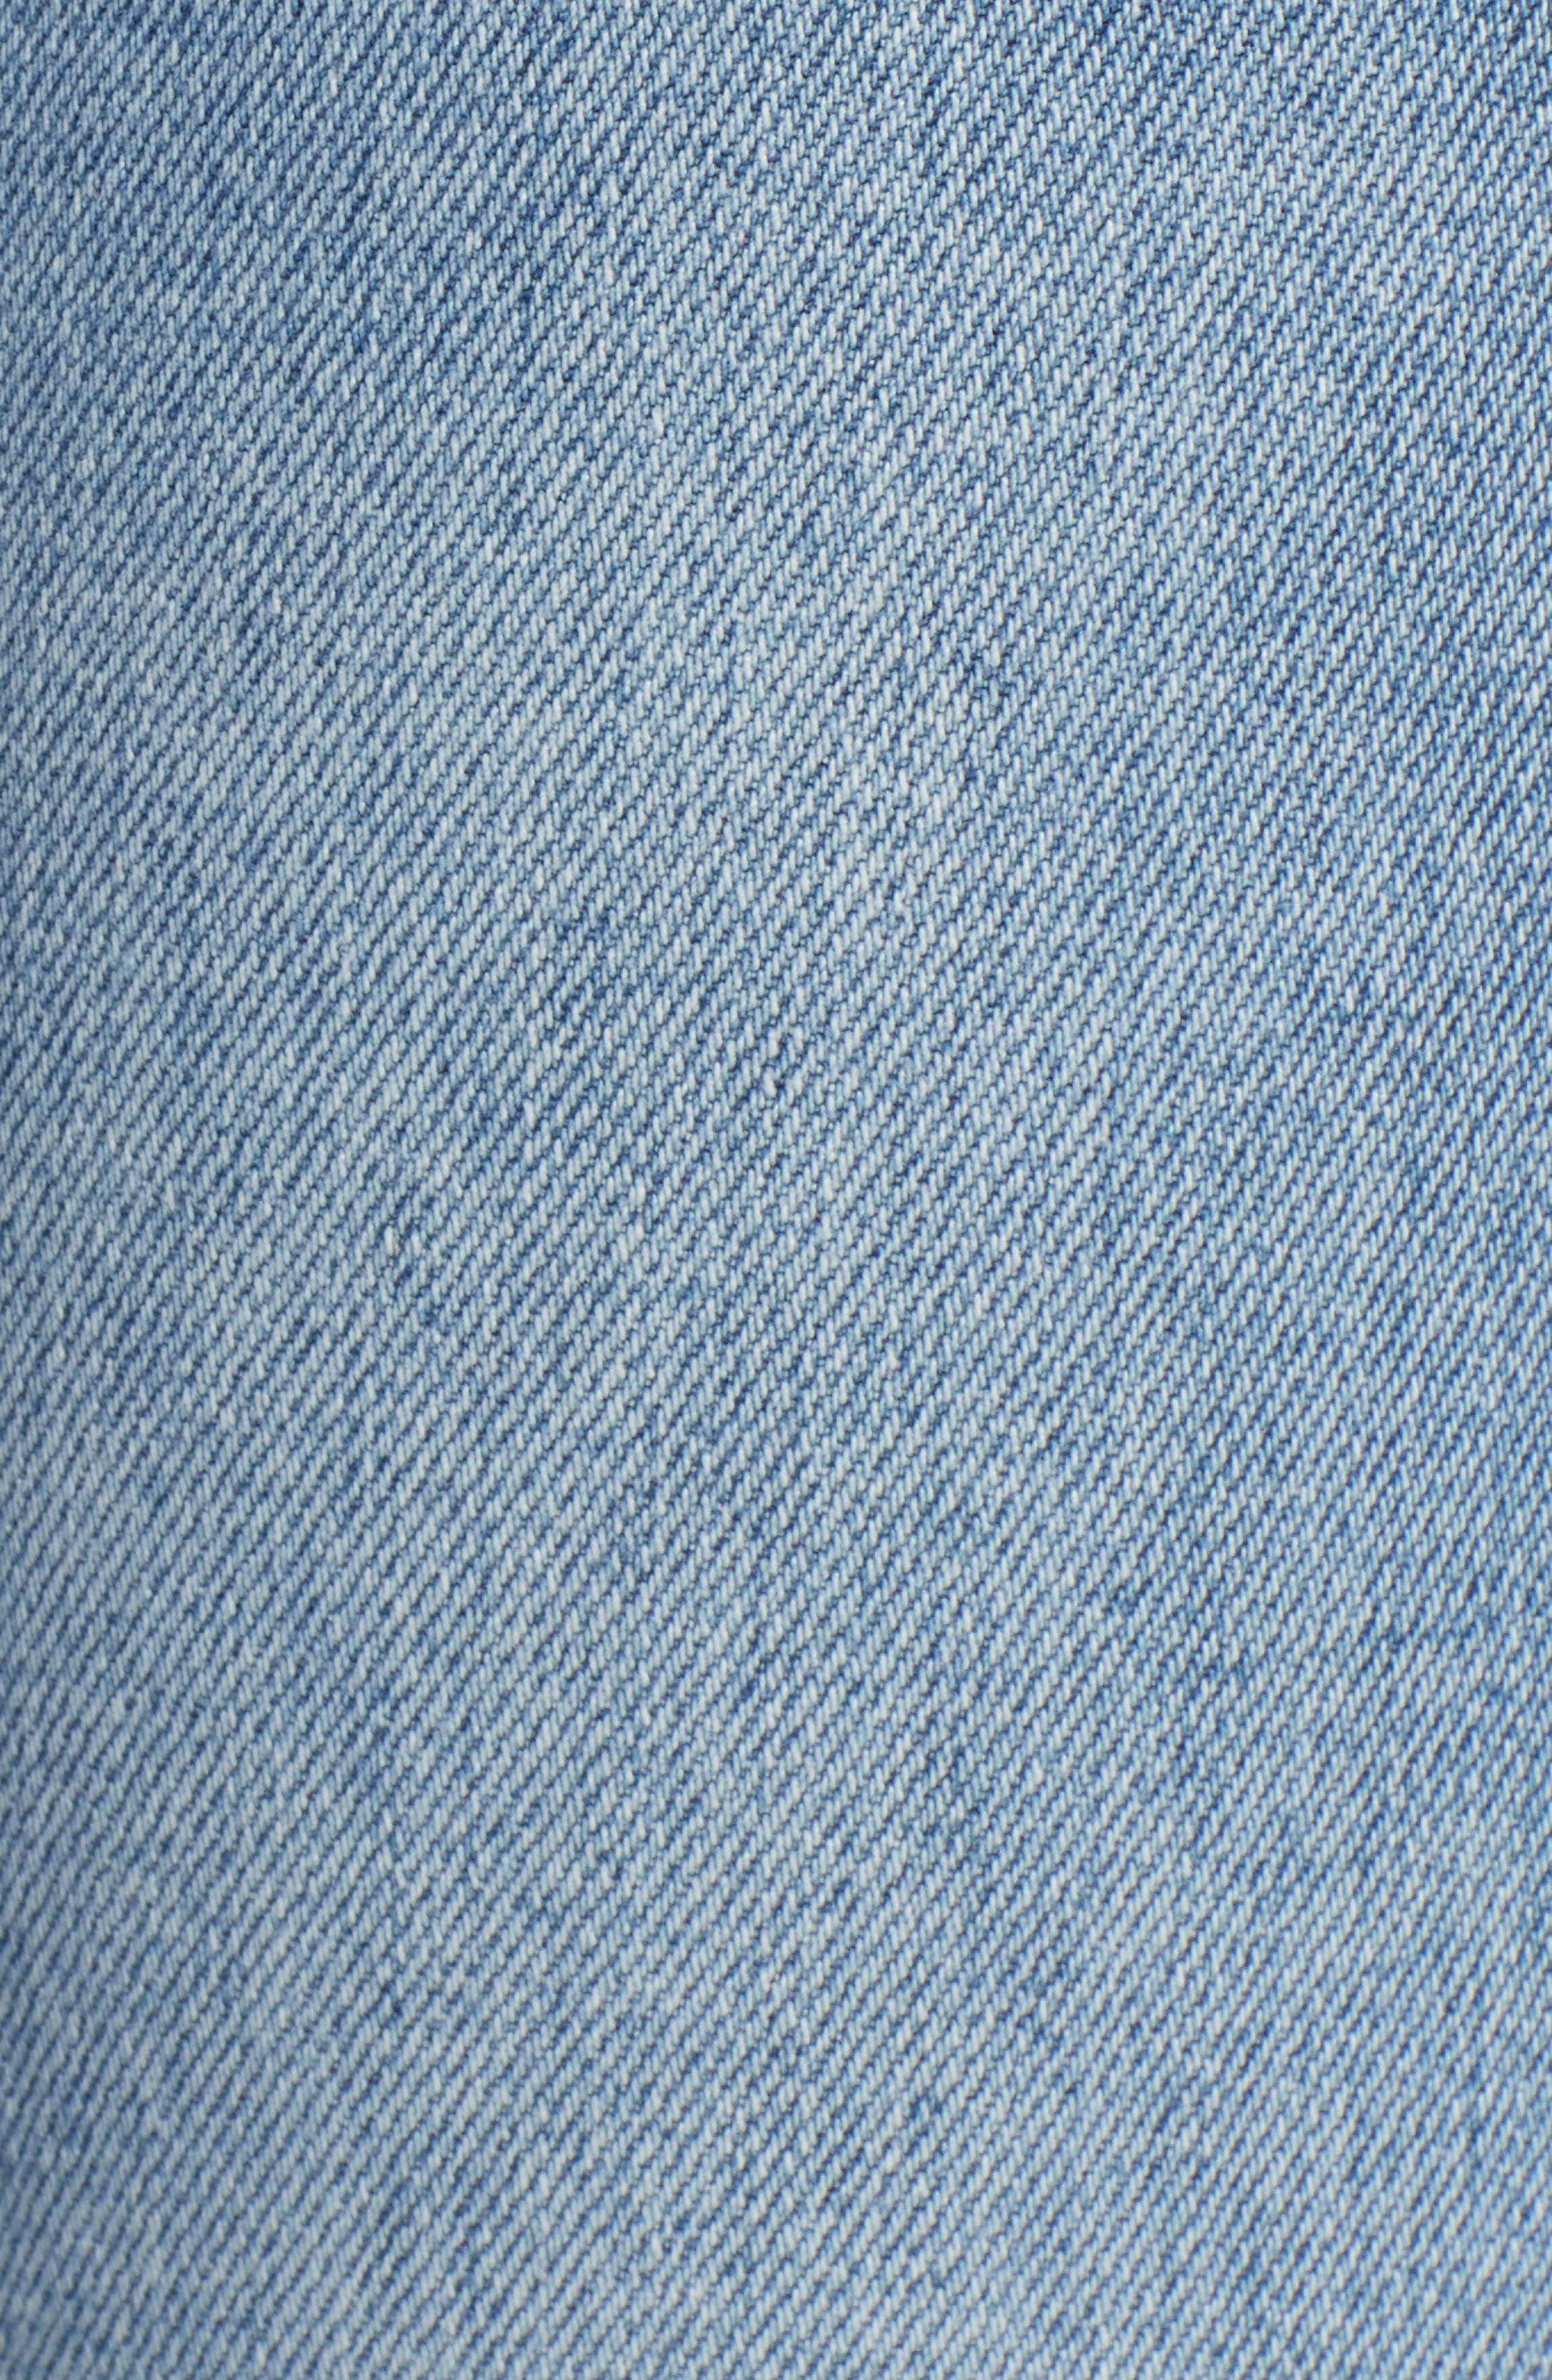 Dazzler Shift Step Waistband Jeans,                             Alternate thumbnail 6, color,                             452